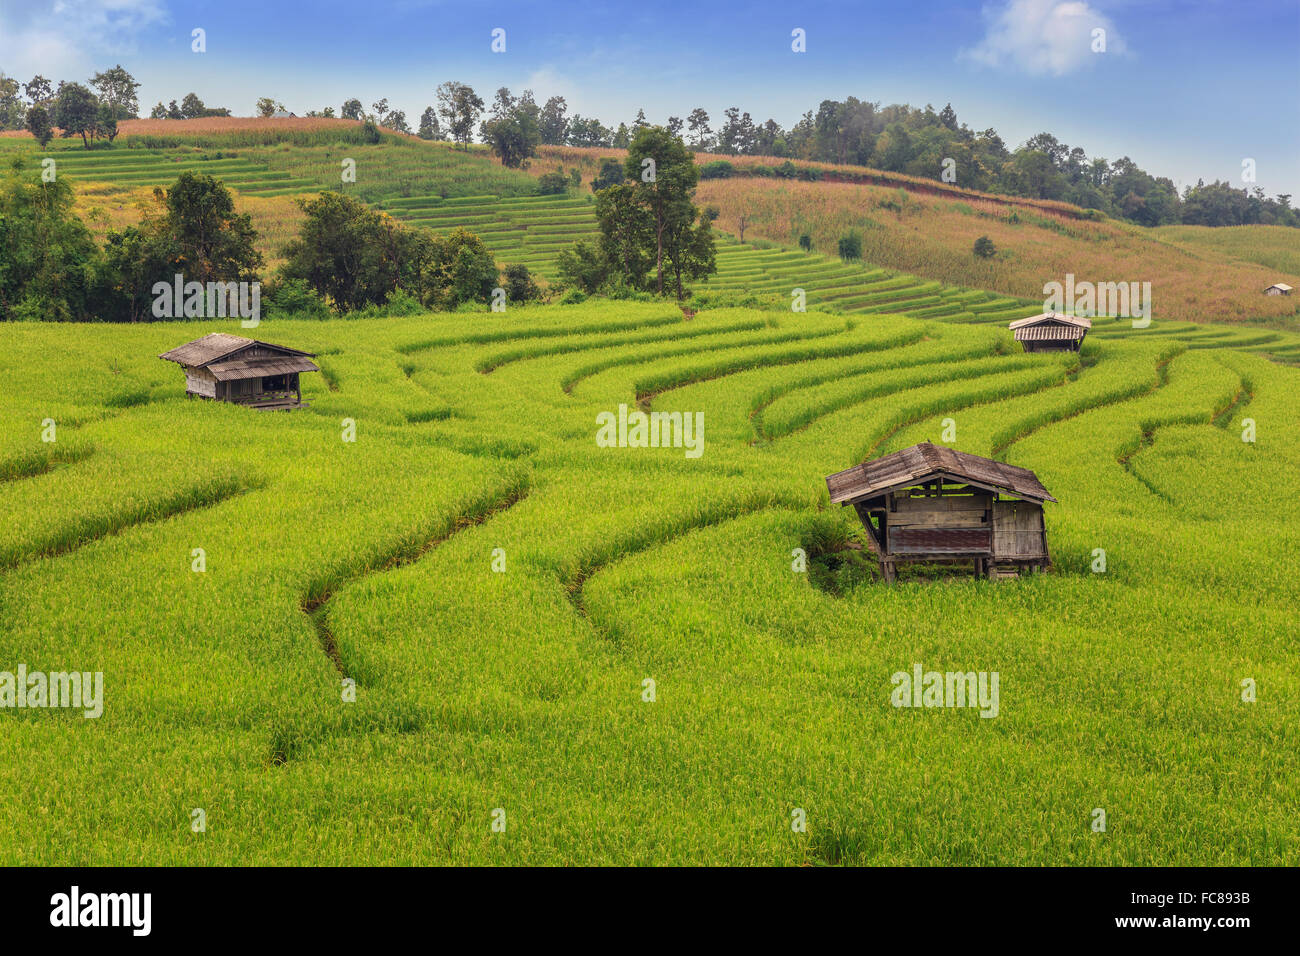 The rice fields in the country of Thailand - Stock Image